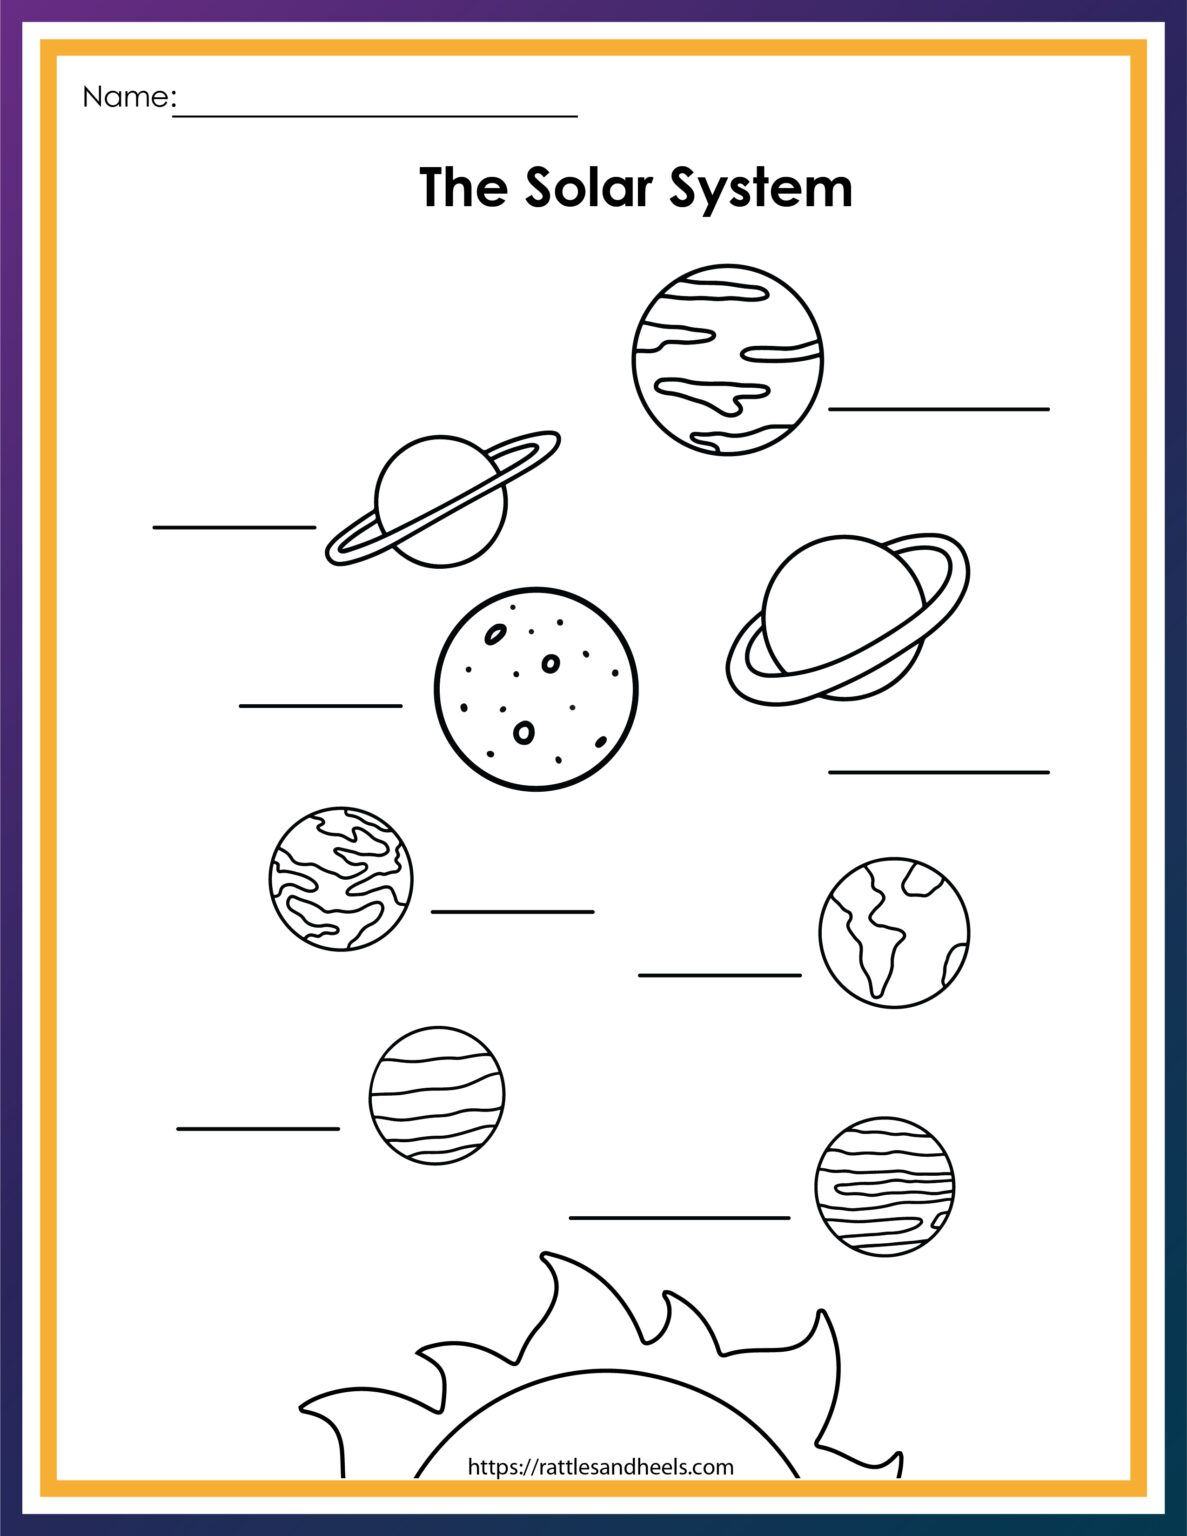 Free Solar System Worksheets For Kids Adanna Dill Solar System Worksheets Solar System For Kids Free Solar